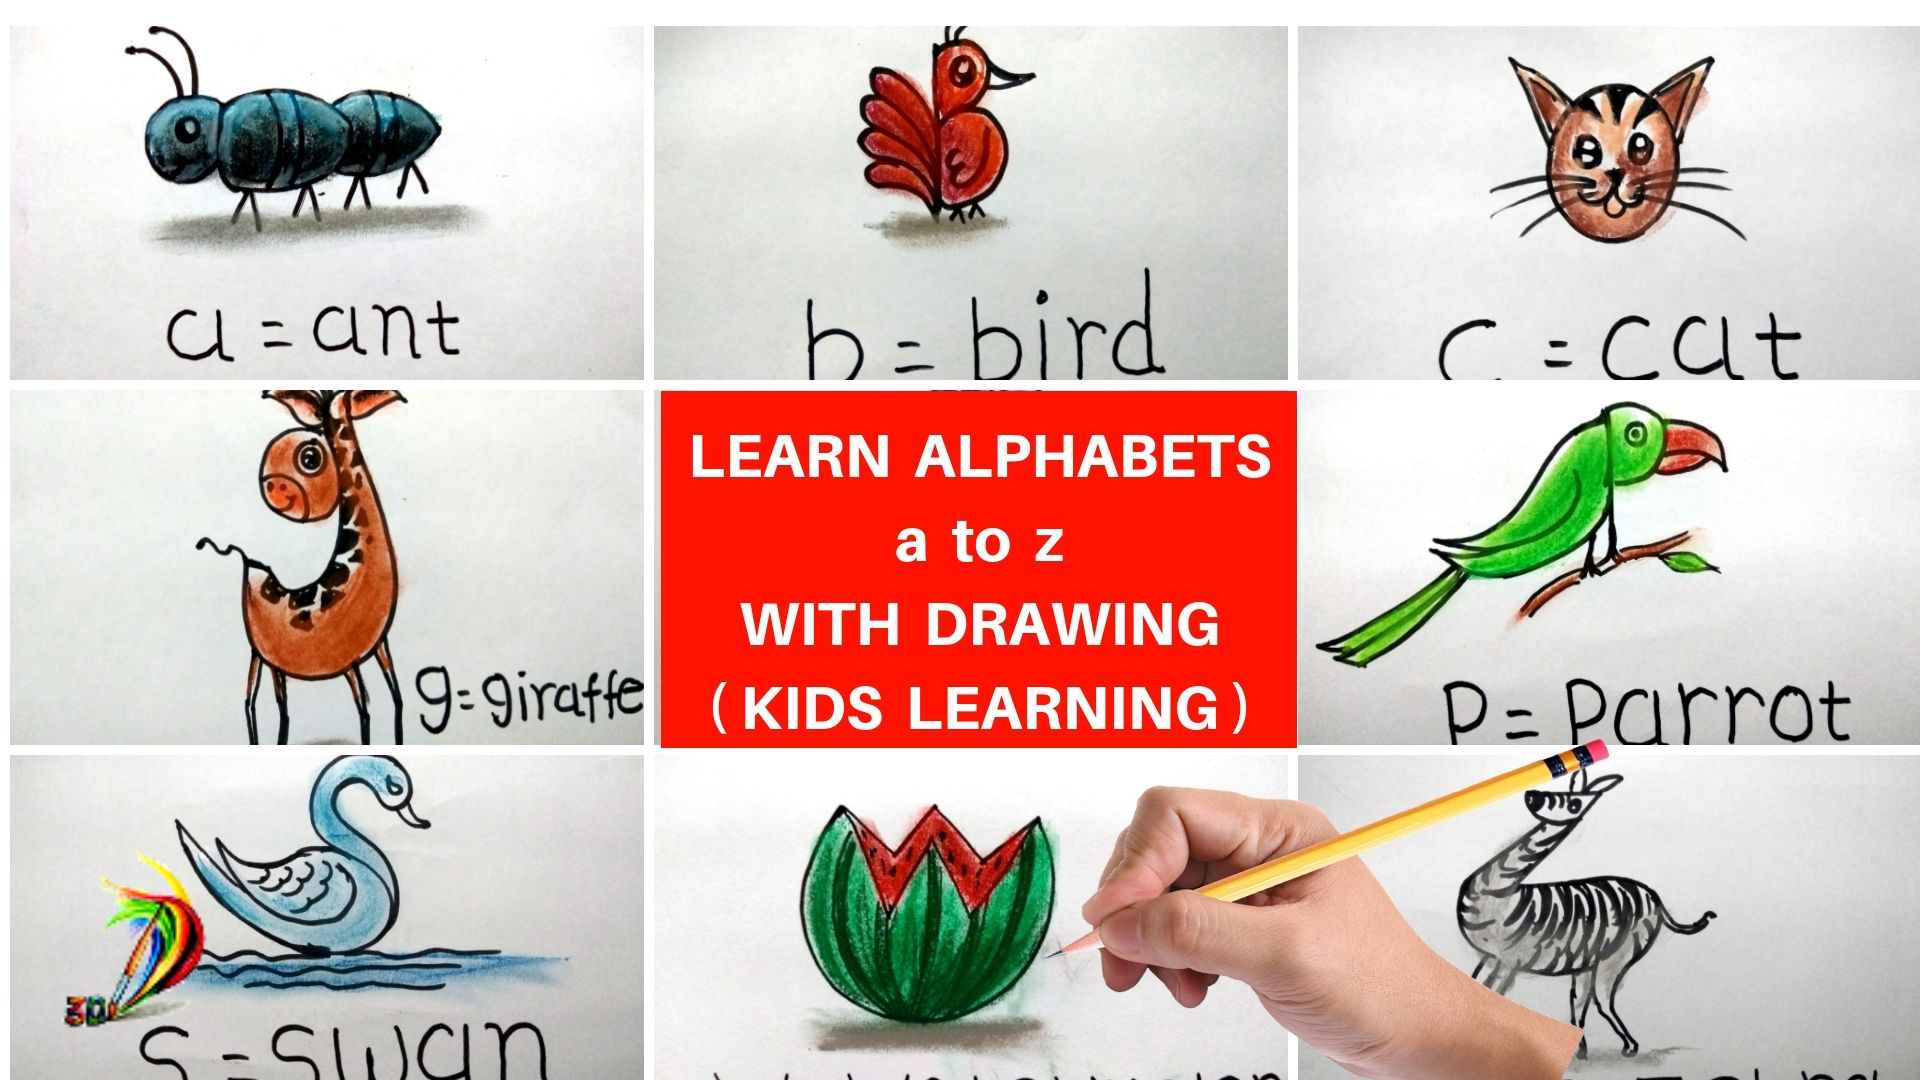 Turn Alpbhabet A To Z Into Drawing Easy Drawings For Kids Easy Drawings Creative Drawing